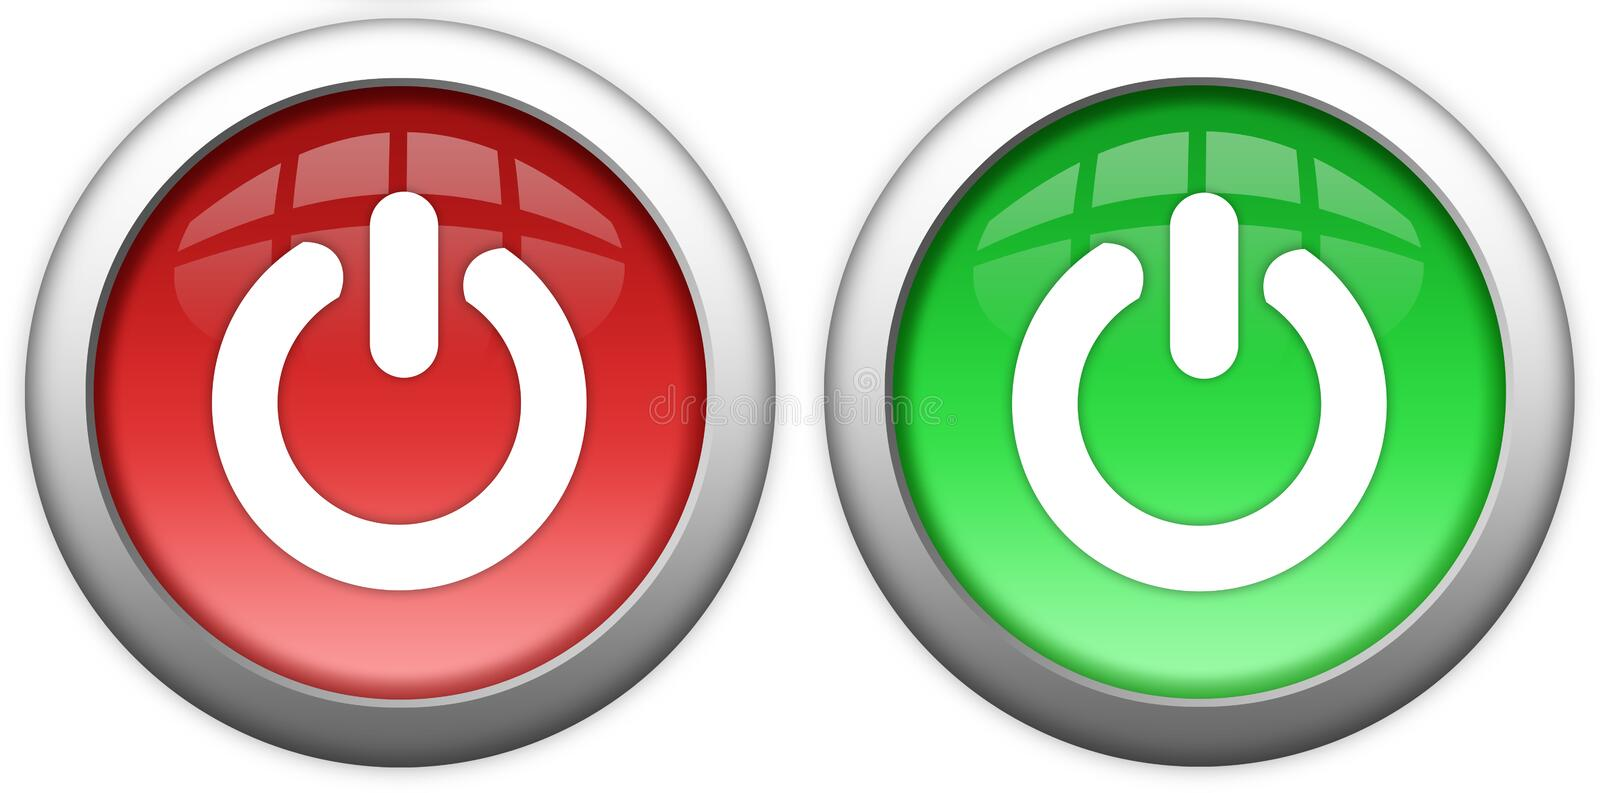 Download Turn on off button stock illustration. Image of shiny - 13045882